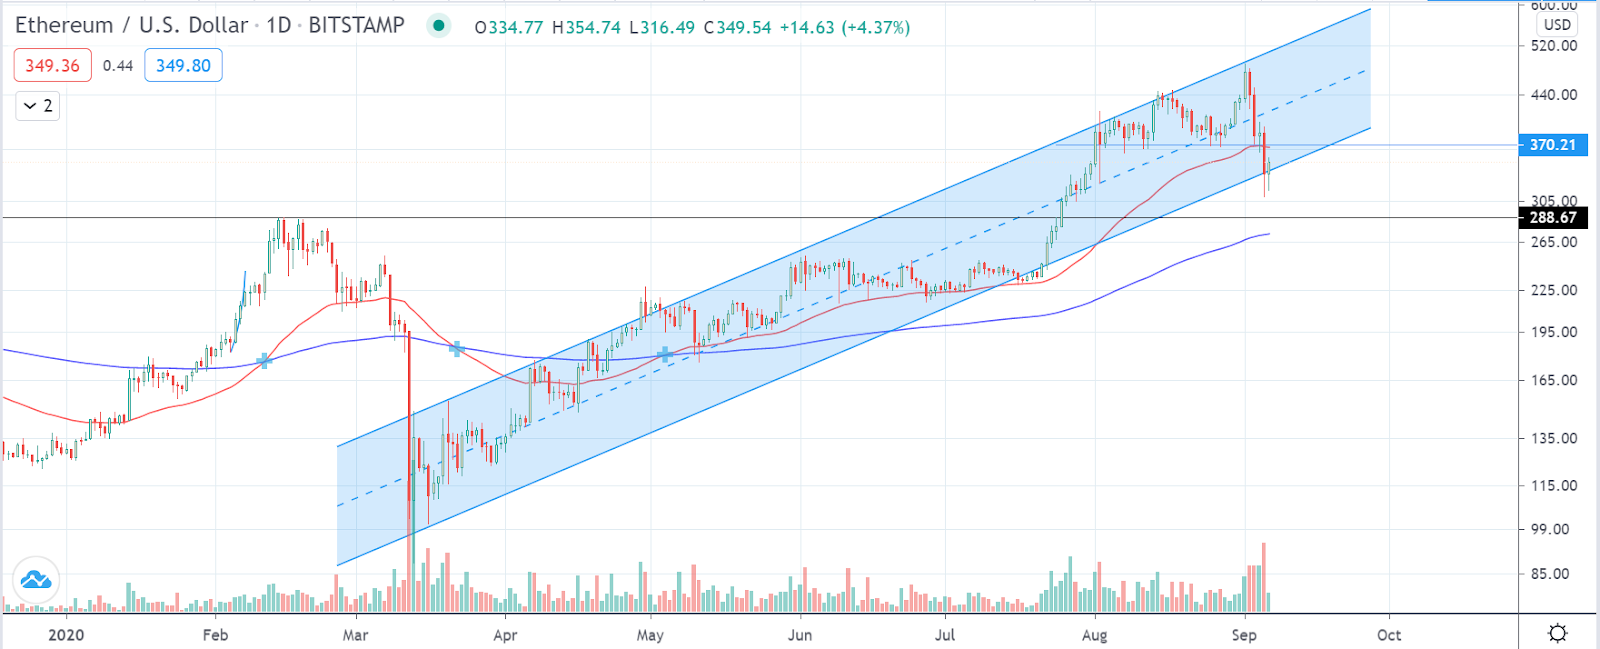 ETH/USD 1-day ascending channel